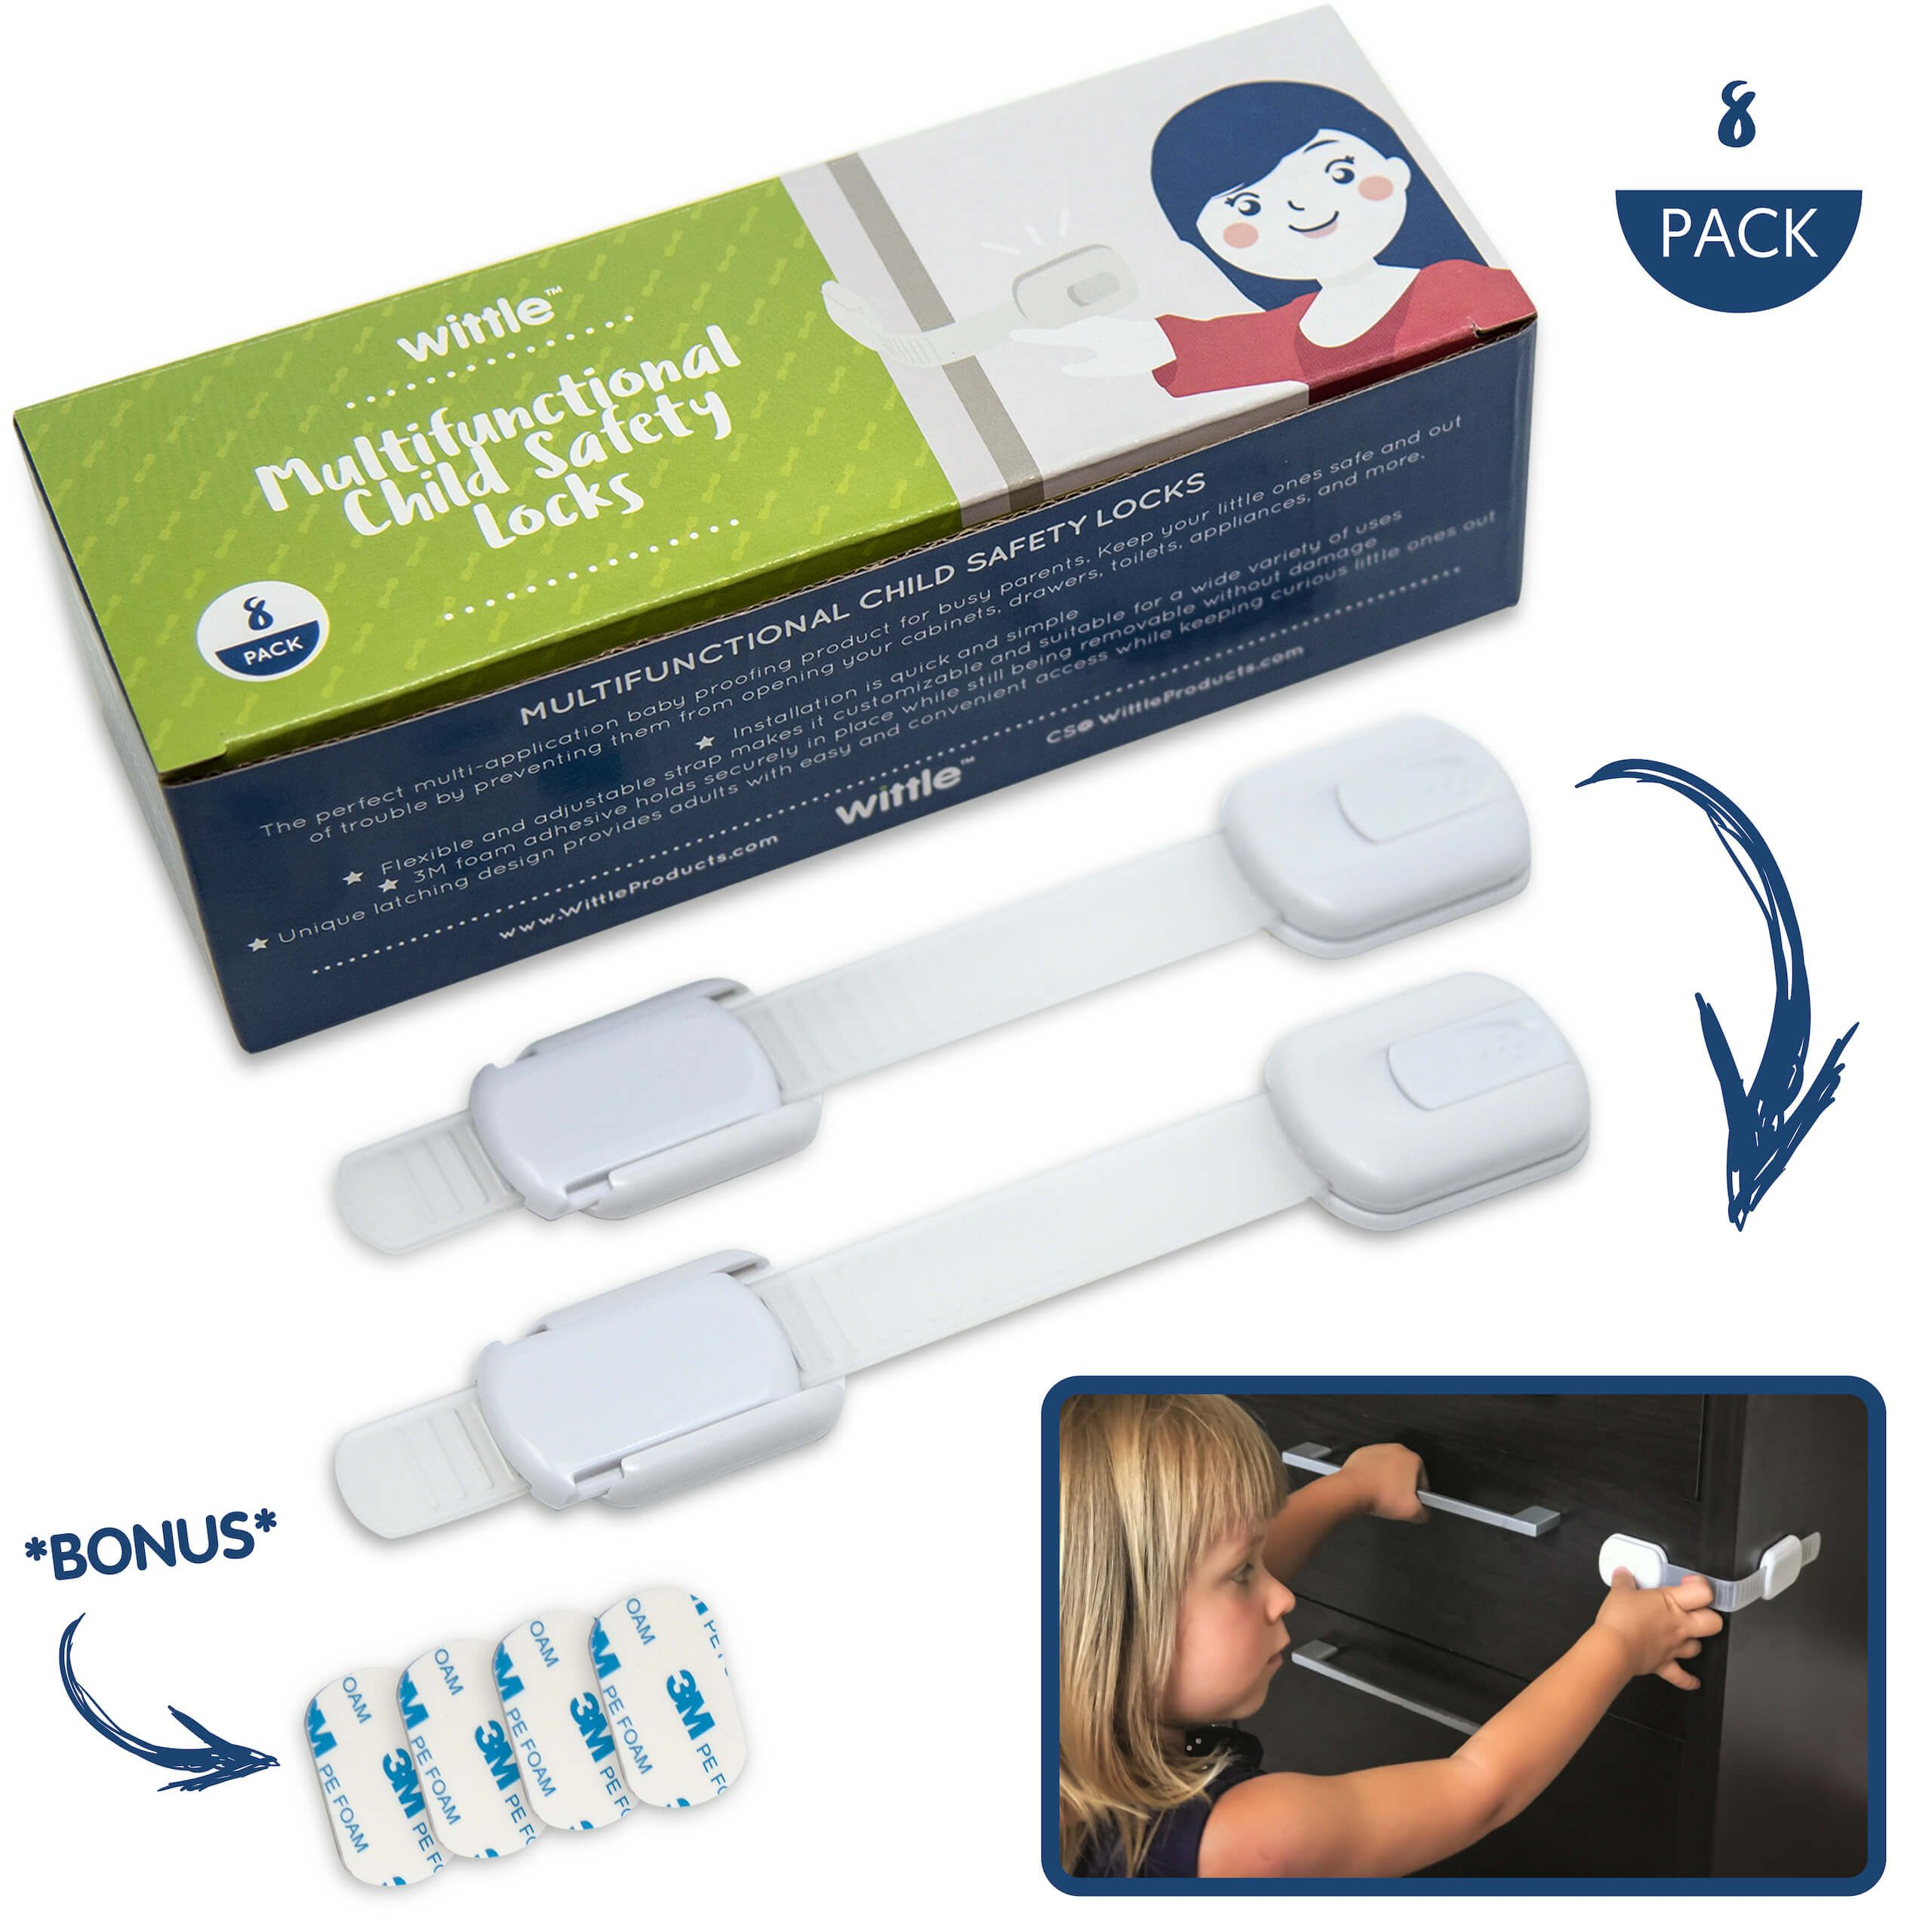 Free 2day shipping. Buy Wittle Child Safety Locks